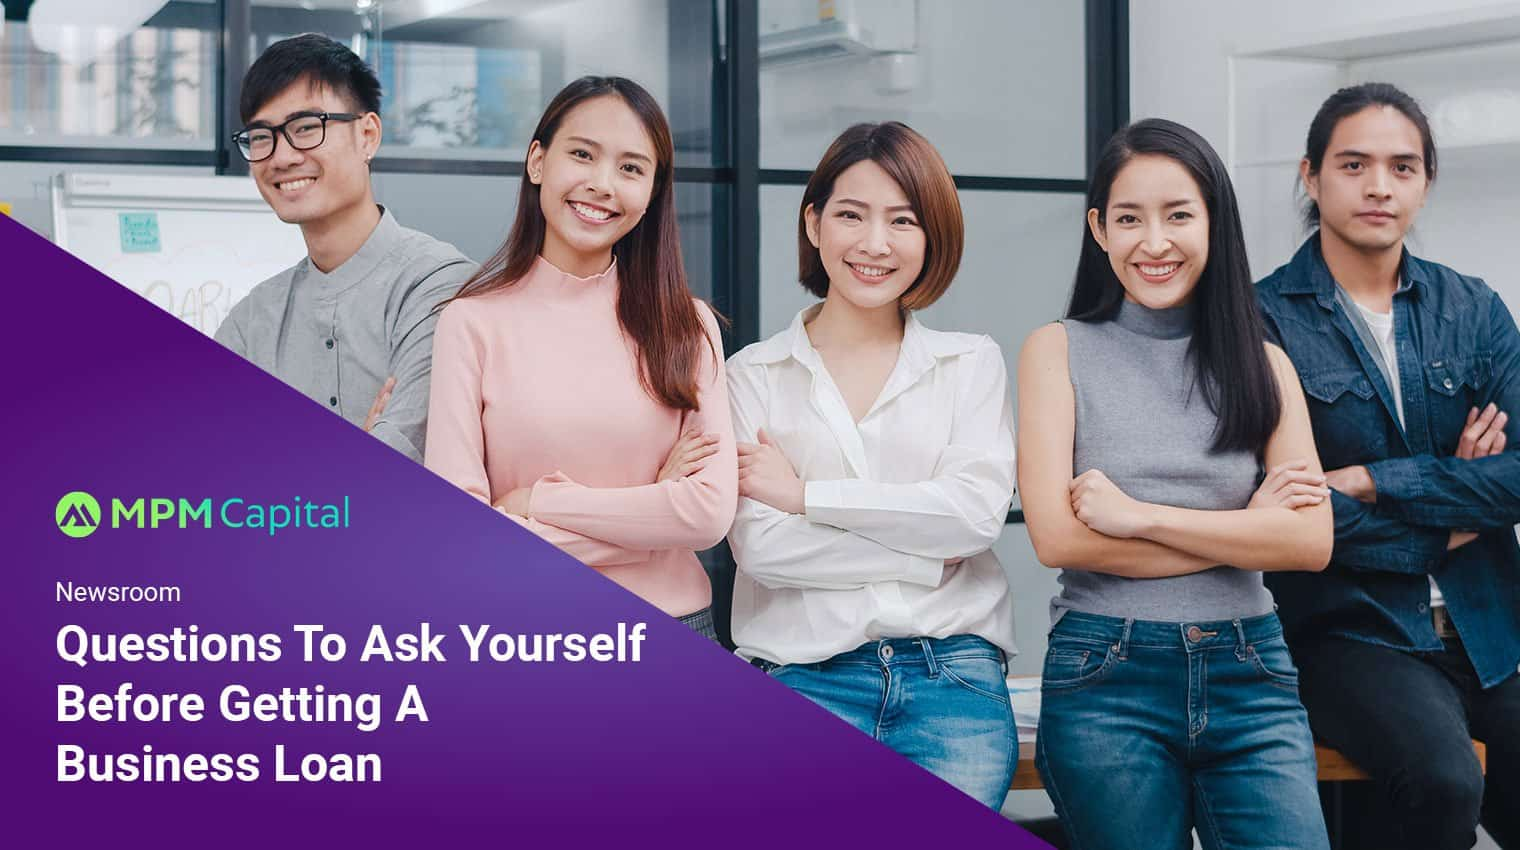 MPM-Capital-Questions-To-Ask-Yourself-Before-Getting-A-Business-Loan